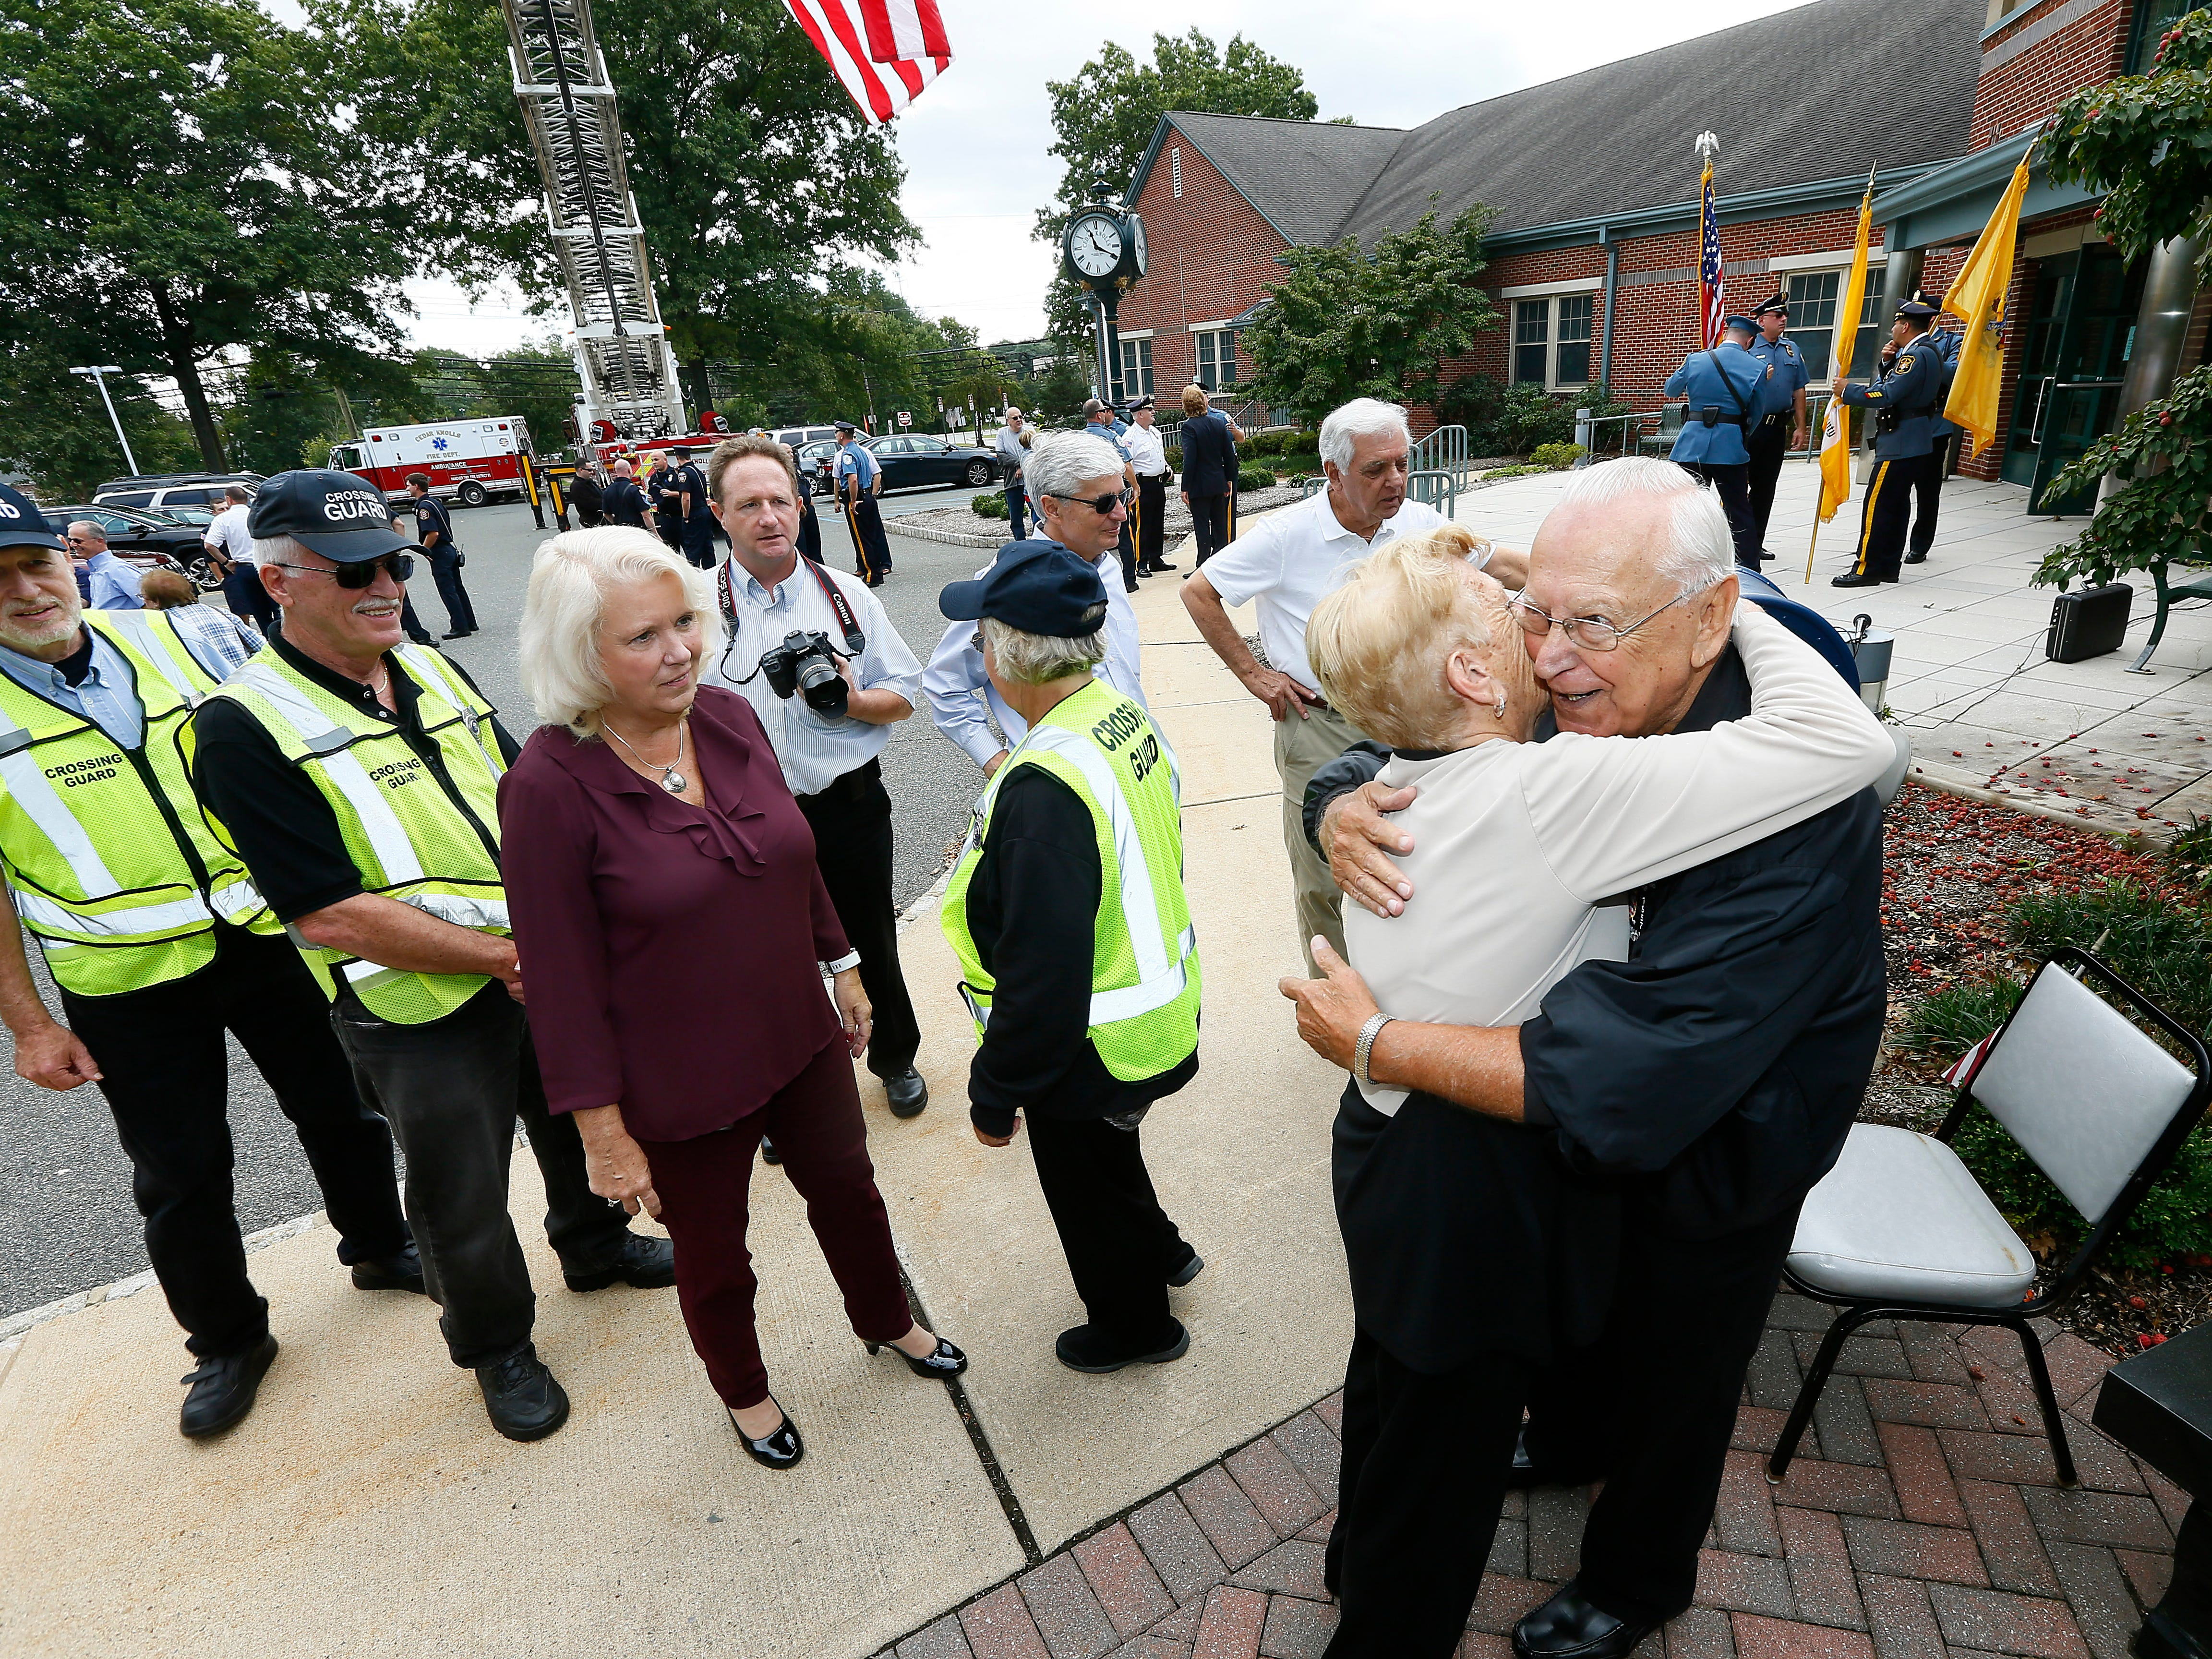 Steve Bolcar hugs friends after speaking to the crowd during the police-style clapout for the retirement of the 60-year officer and crossing guard at the Hanover Municipal Building. October 3, 2018, Hanover, NJ